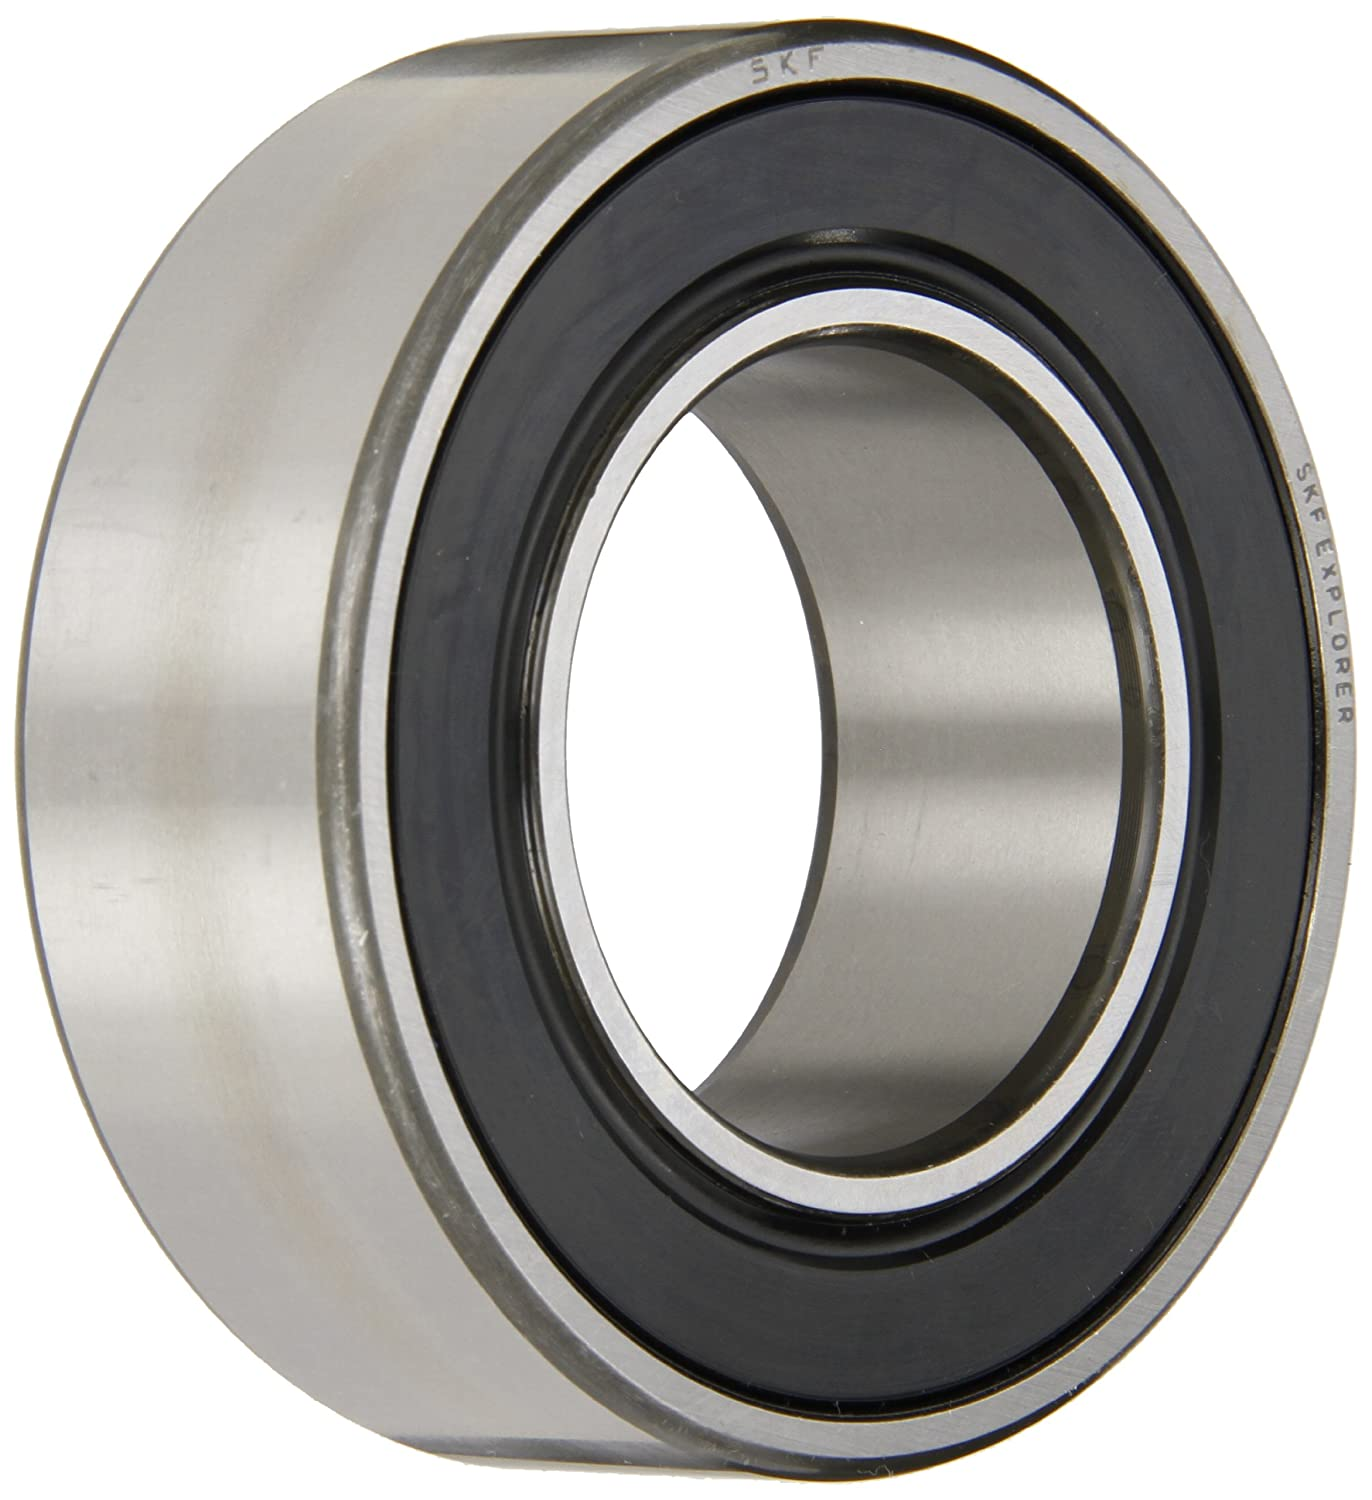 SKF Explorer 32 A Series Double Row Angular Contact Ball Bearing, 30° Contact Angle, Double Sealed, Sheet Steel Cage, Normal Clearance, P6 Precision